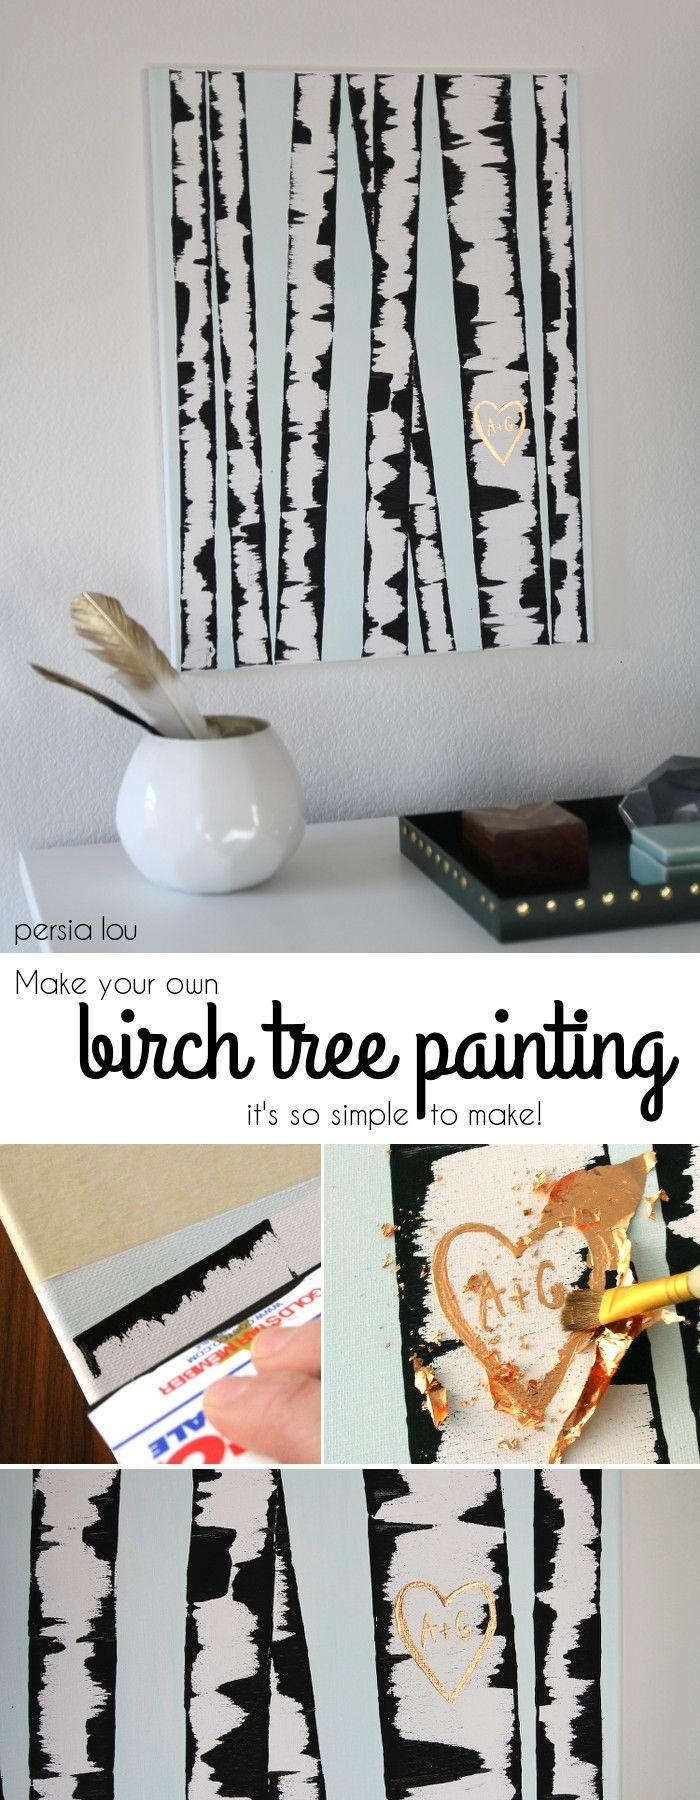 Best 25+ Cheap Wall Art Ideas On Pinterest | Diy Wall Decor For Pertaining To Cheap Wall Art And Decor (View 3 of 20)